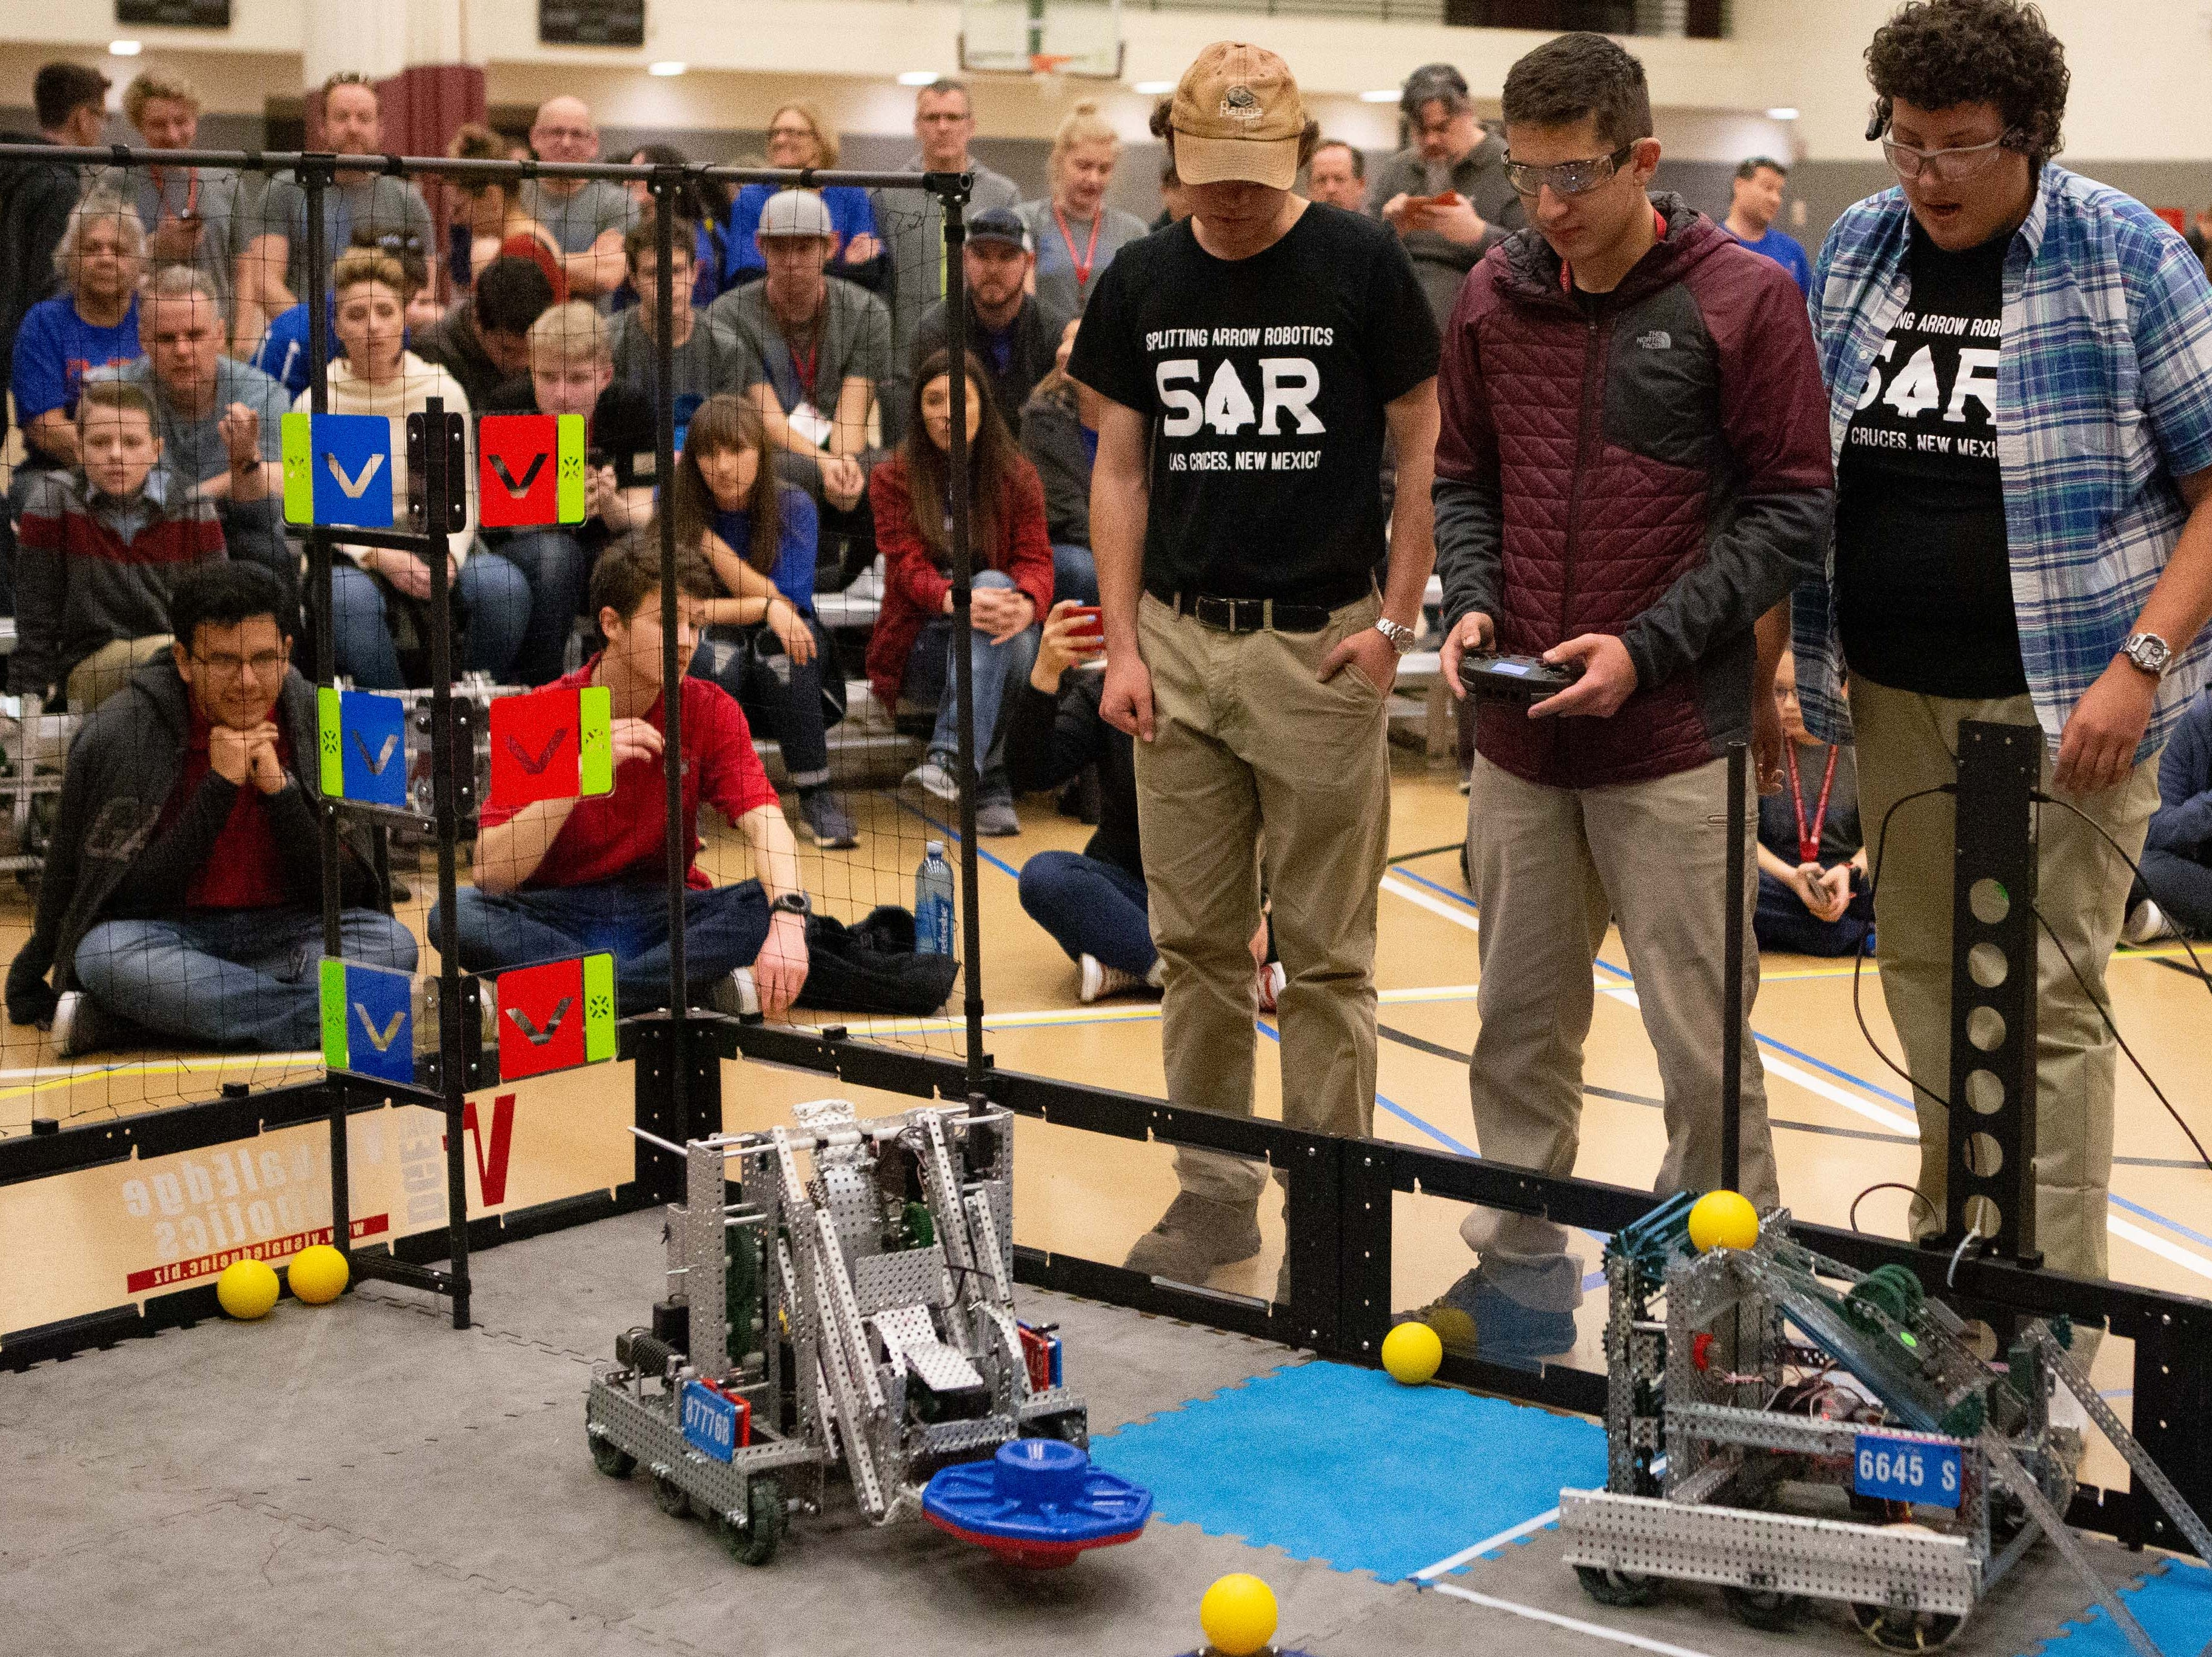 Splitting Arrow Robotics team, from left, John Bell, 17, Shiloh Payne, 18, and Brenton Candelaria, 18 at the VEX Robotics competition for elementary, middle and high school students, held on the NMSU campus on Saturday, Feb. 16, 2019.